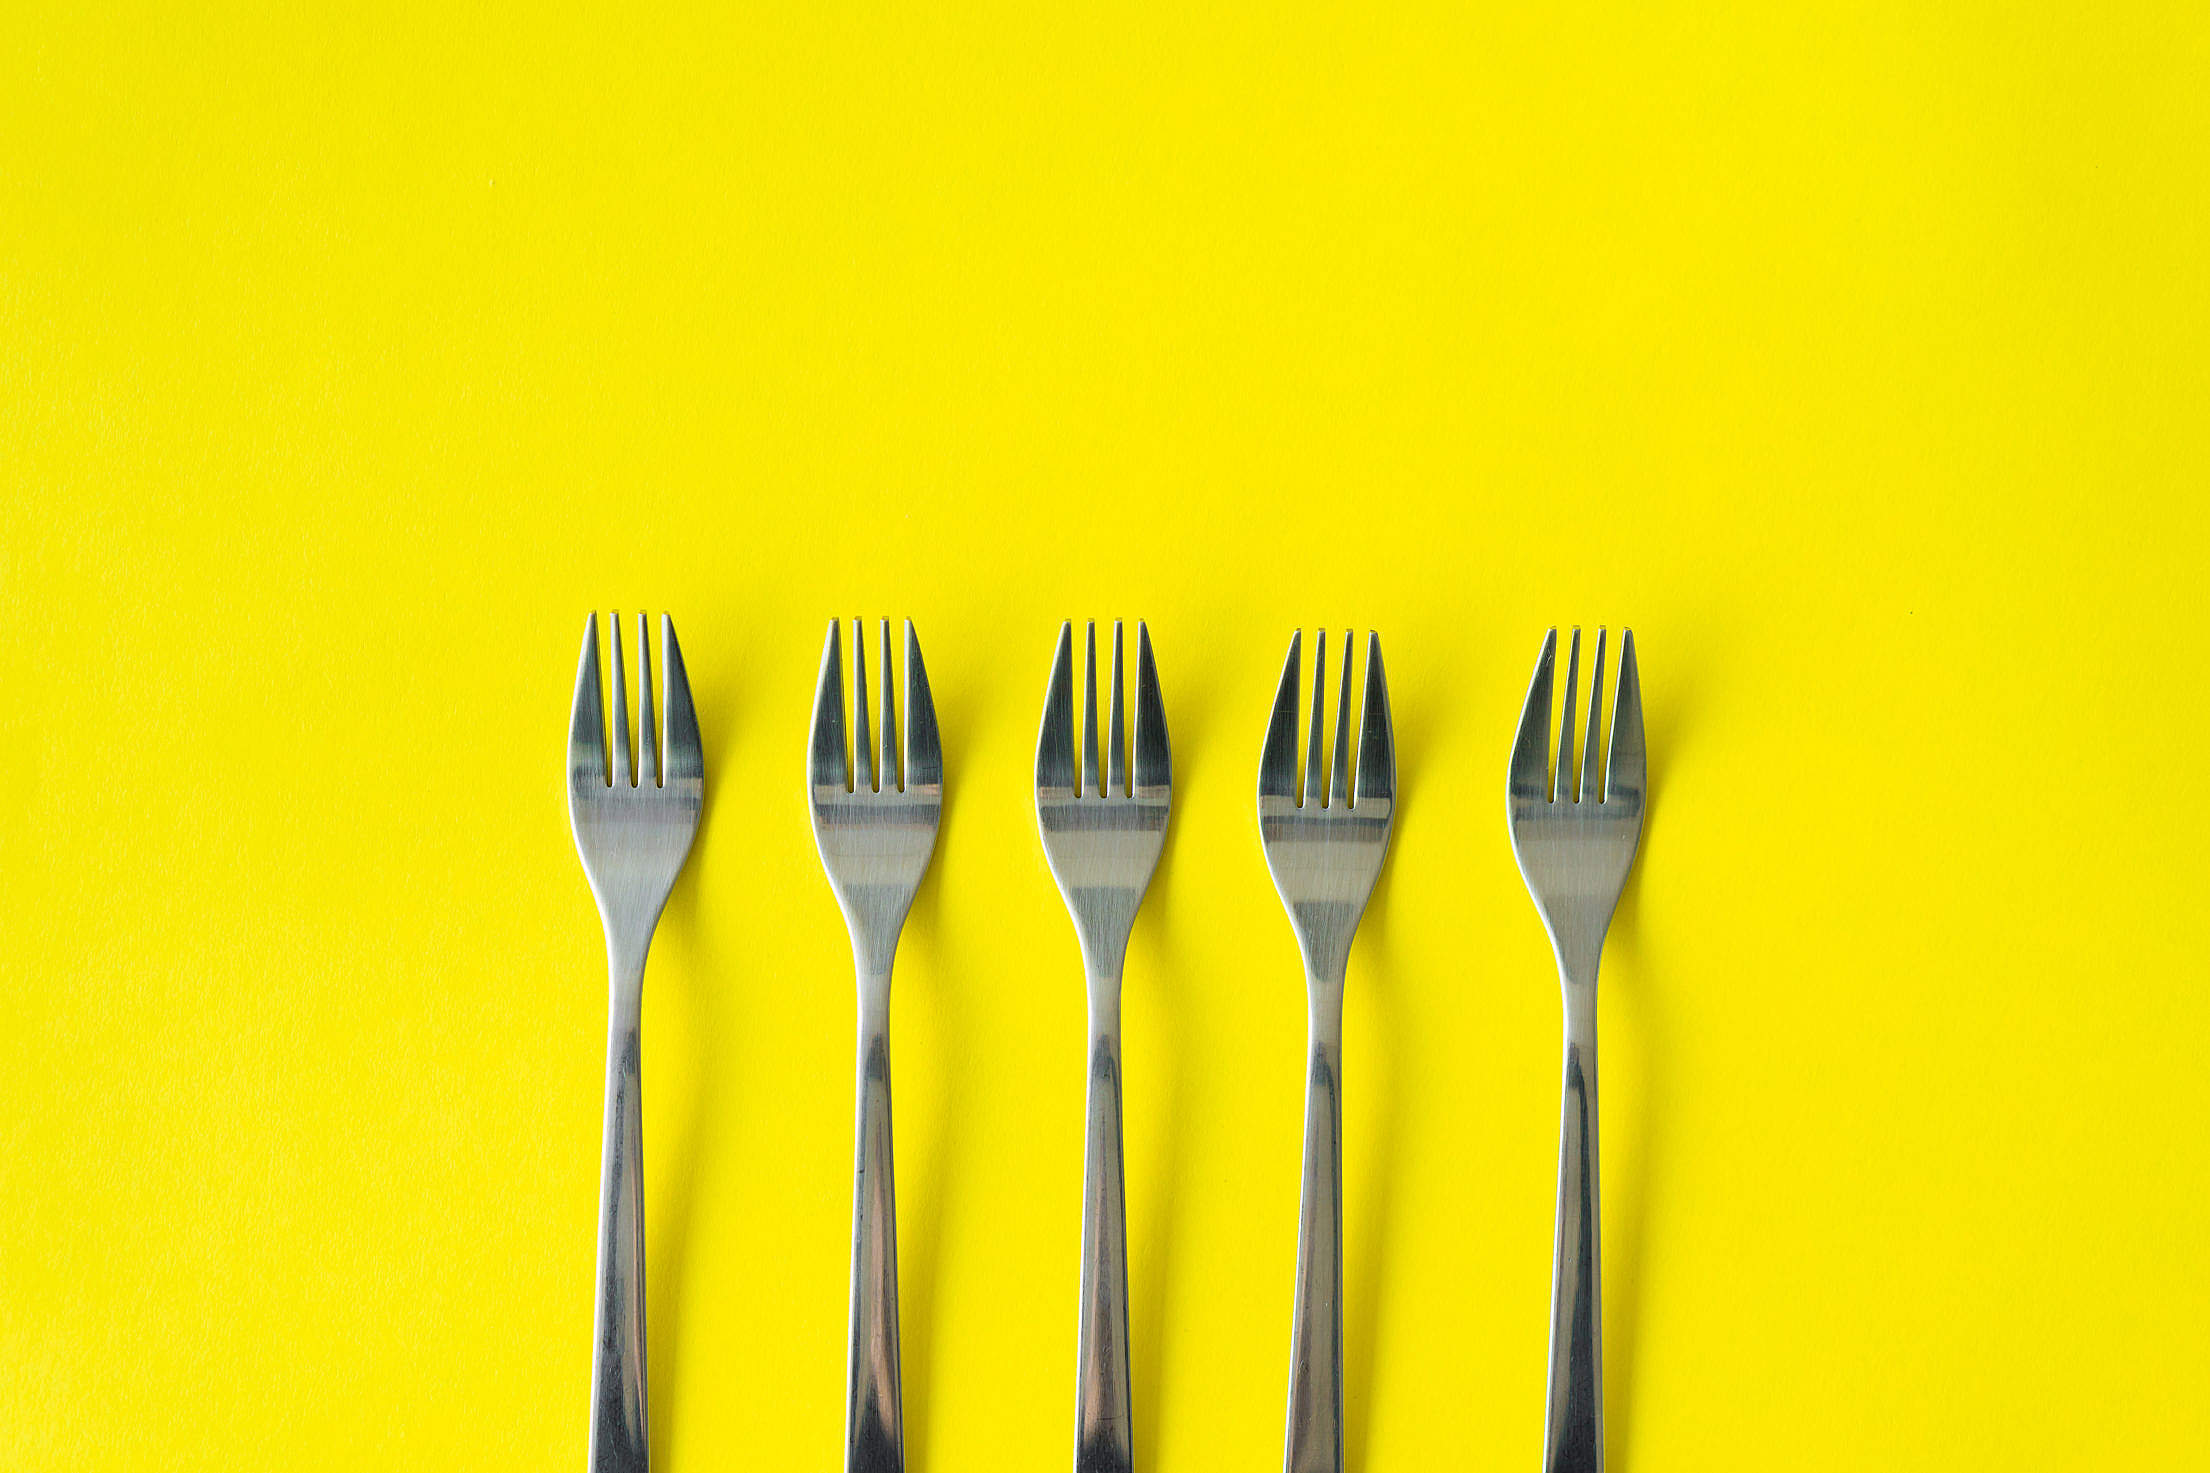 Forks Free Stock Photo